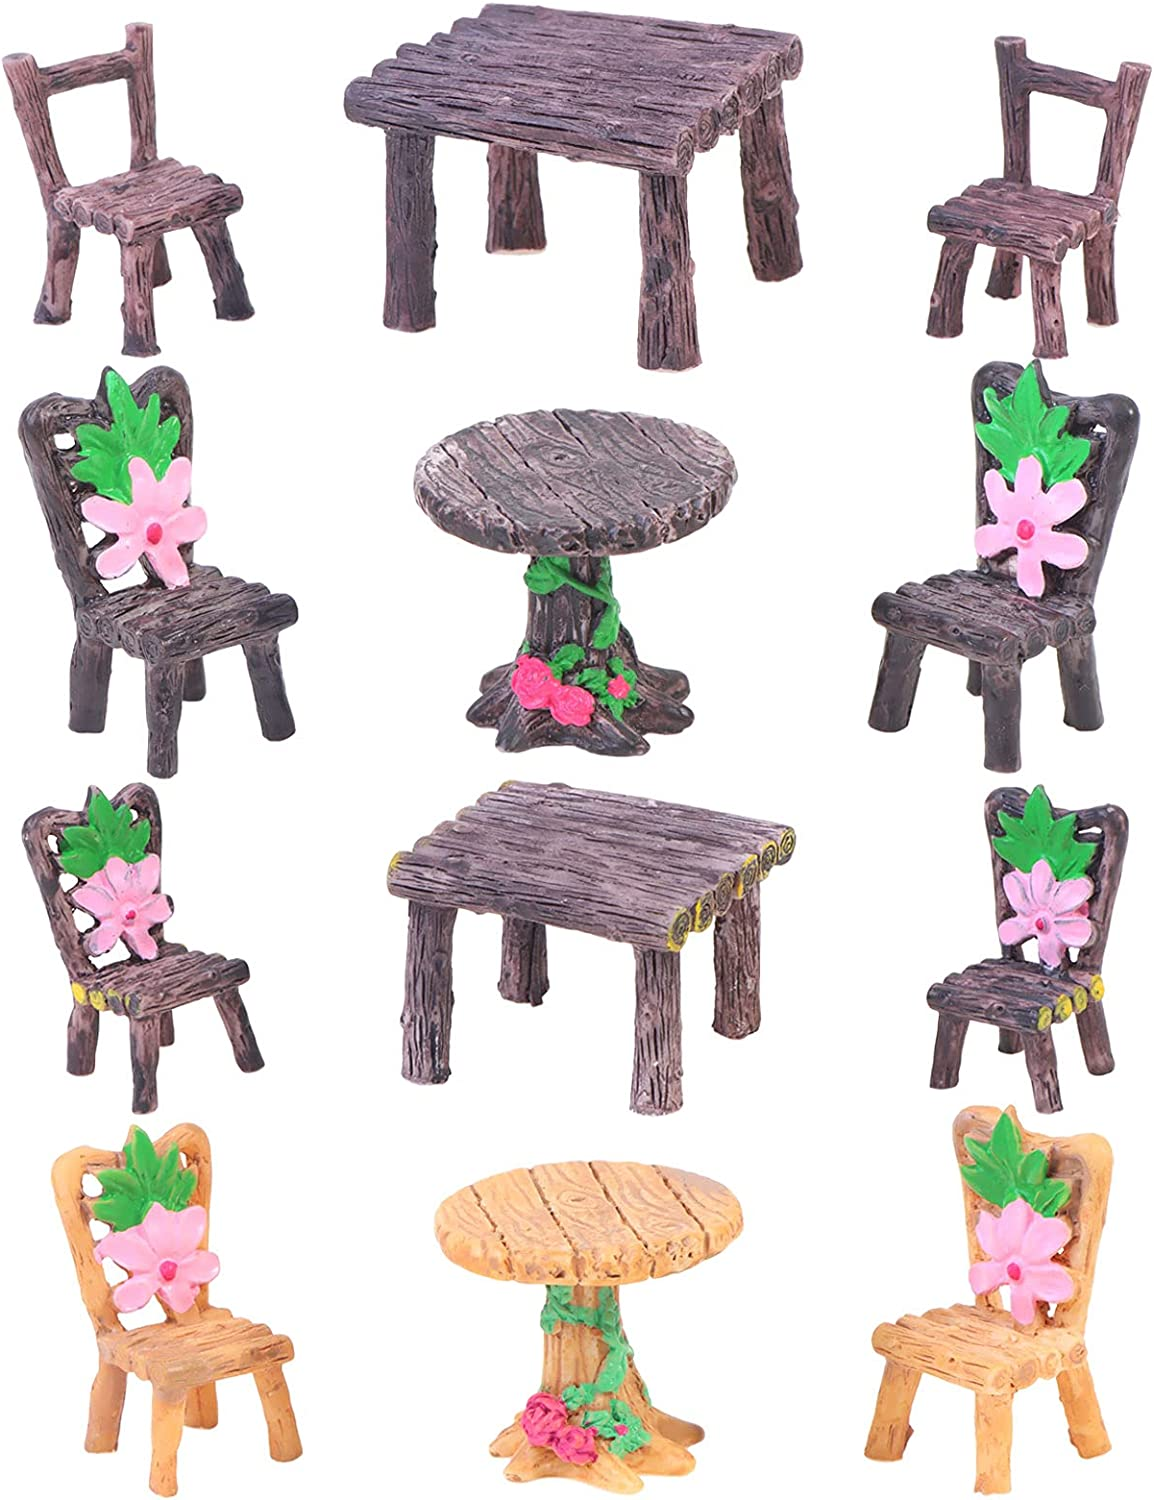 craftshou 12 Pieces Miniature Table and Chairs Set Fairy Garden Accessories Dollhouse Furniture Ornaments for Resin,Mini Table Chair Home Micro Landscape Decoration Supplies